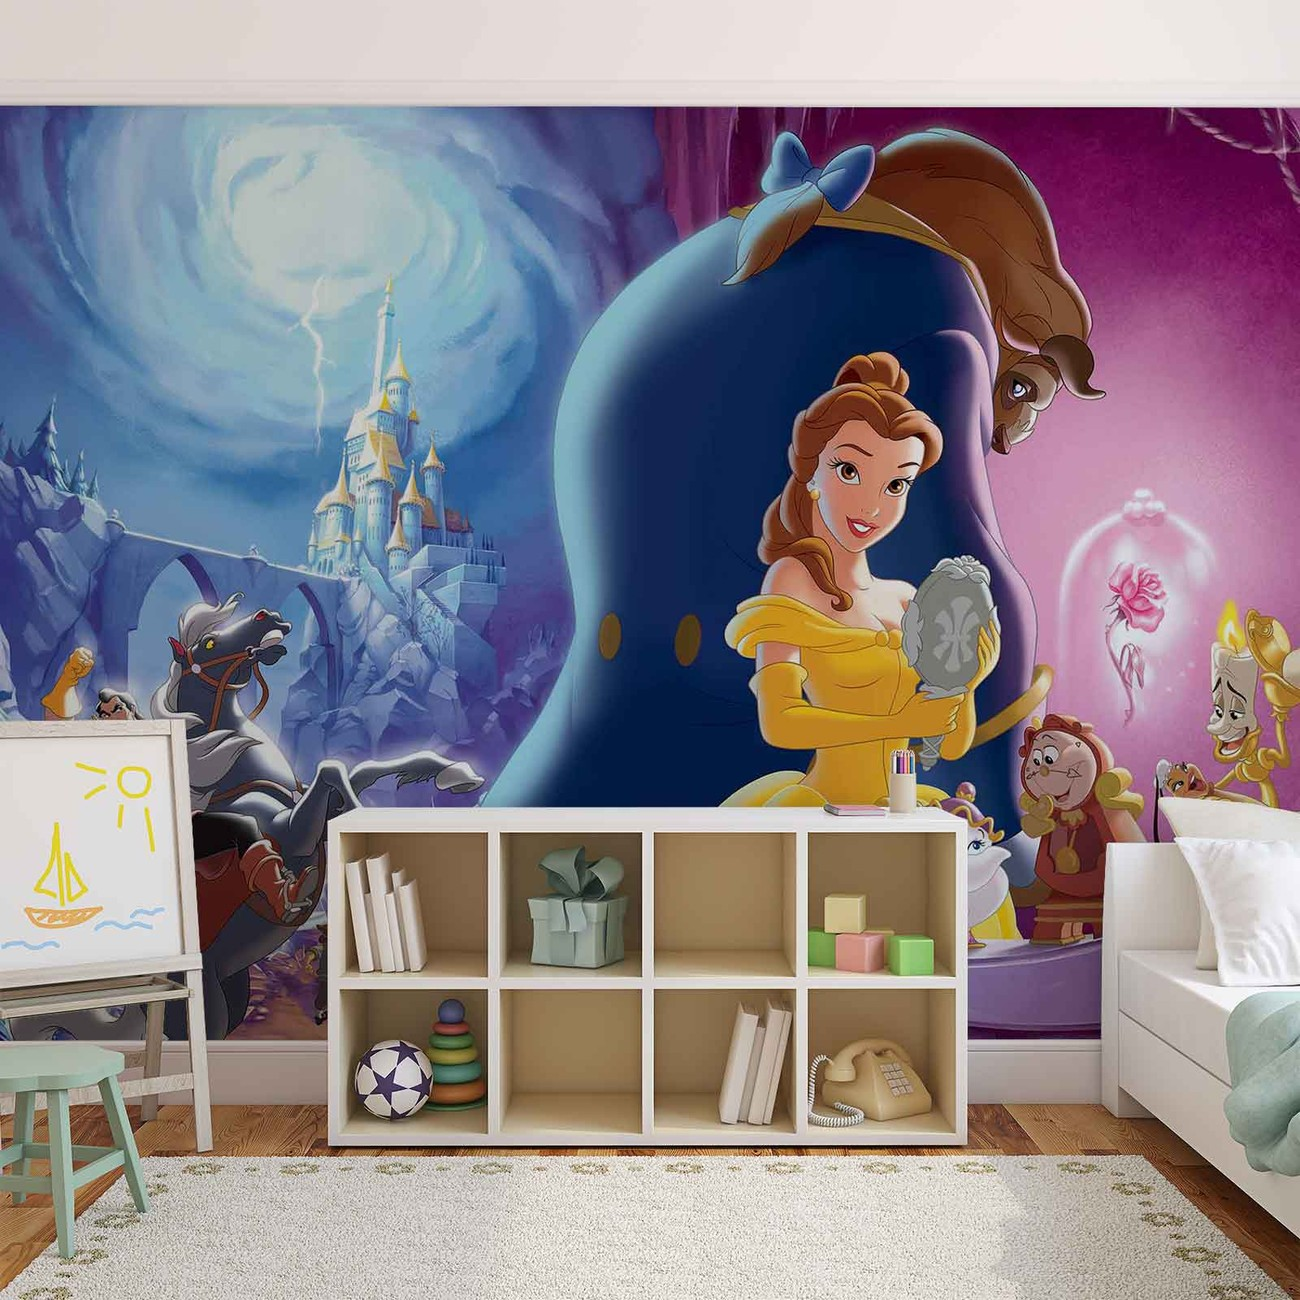 disney princesses belle beauty beast wall paper mural